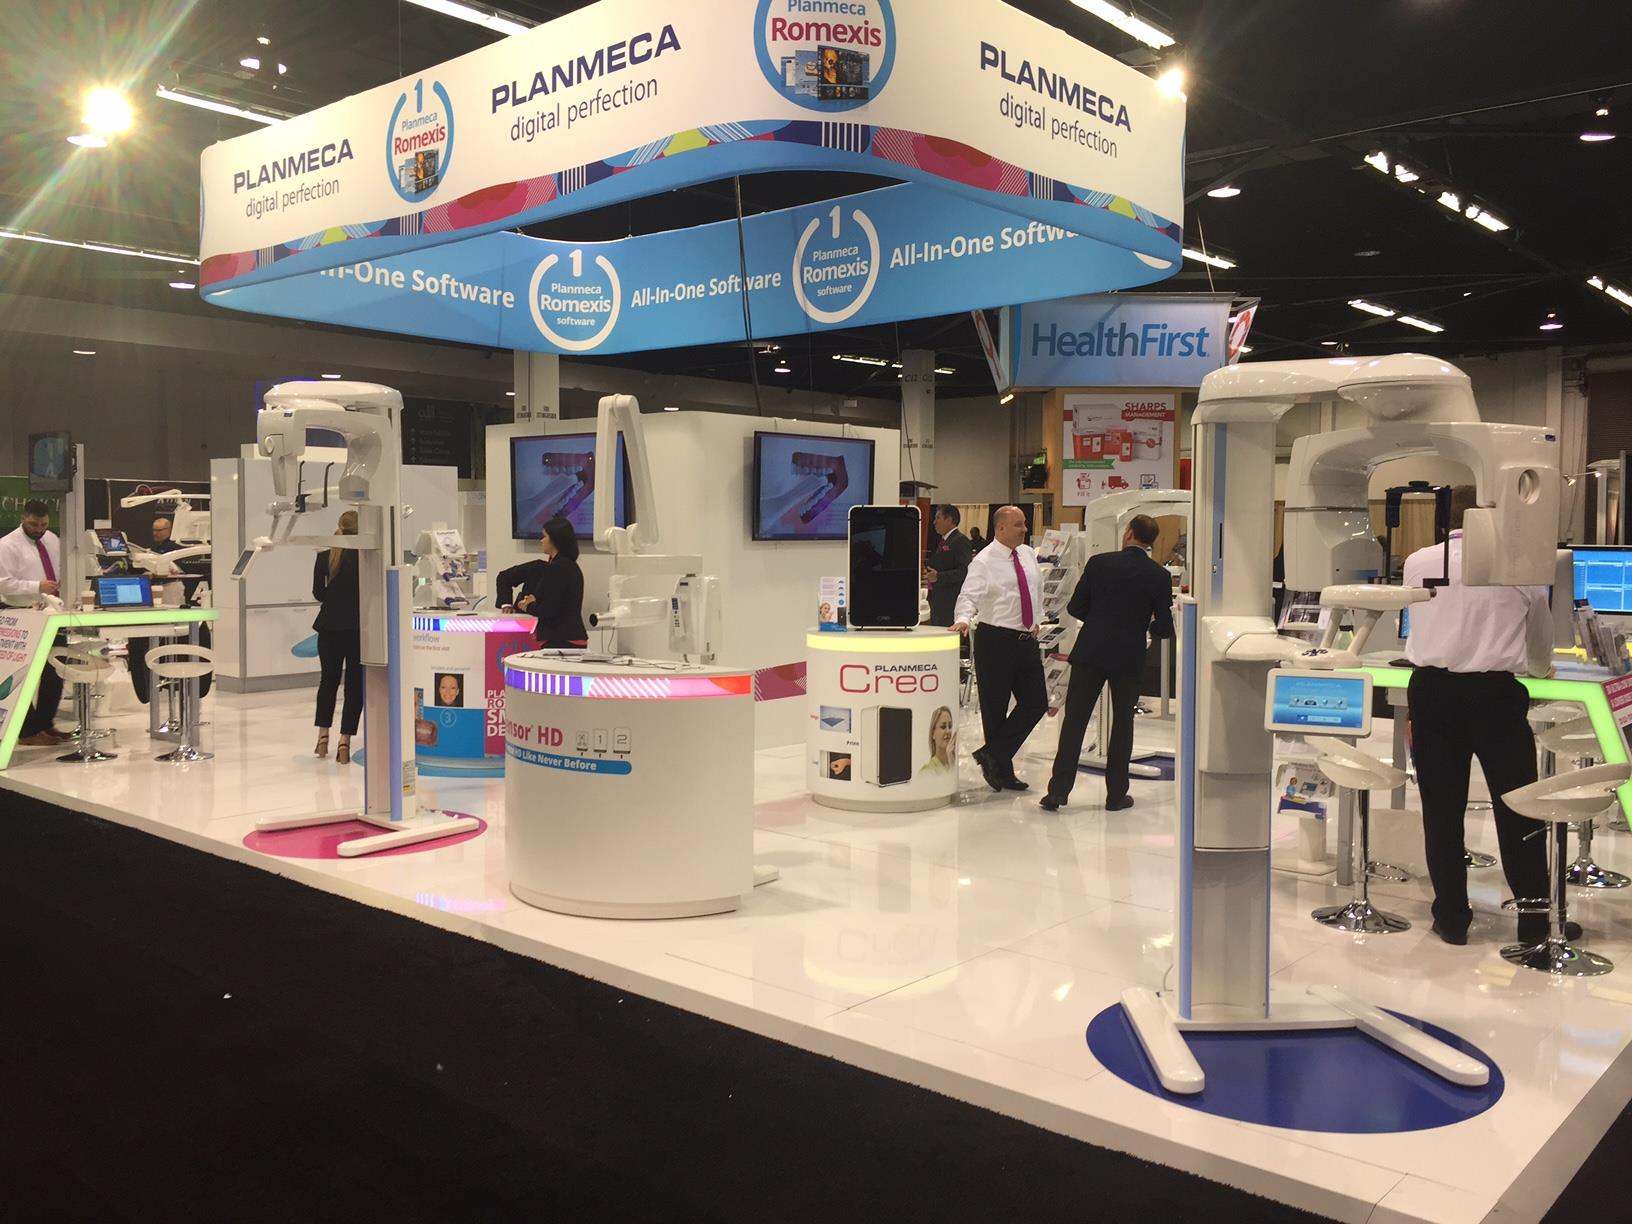 Planmeca Large Booth Exhibit at Trade Show